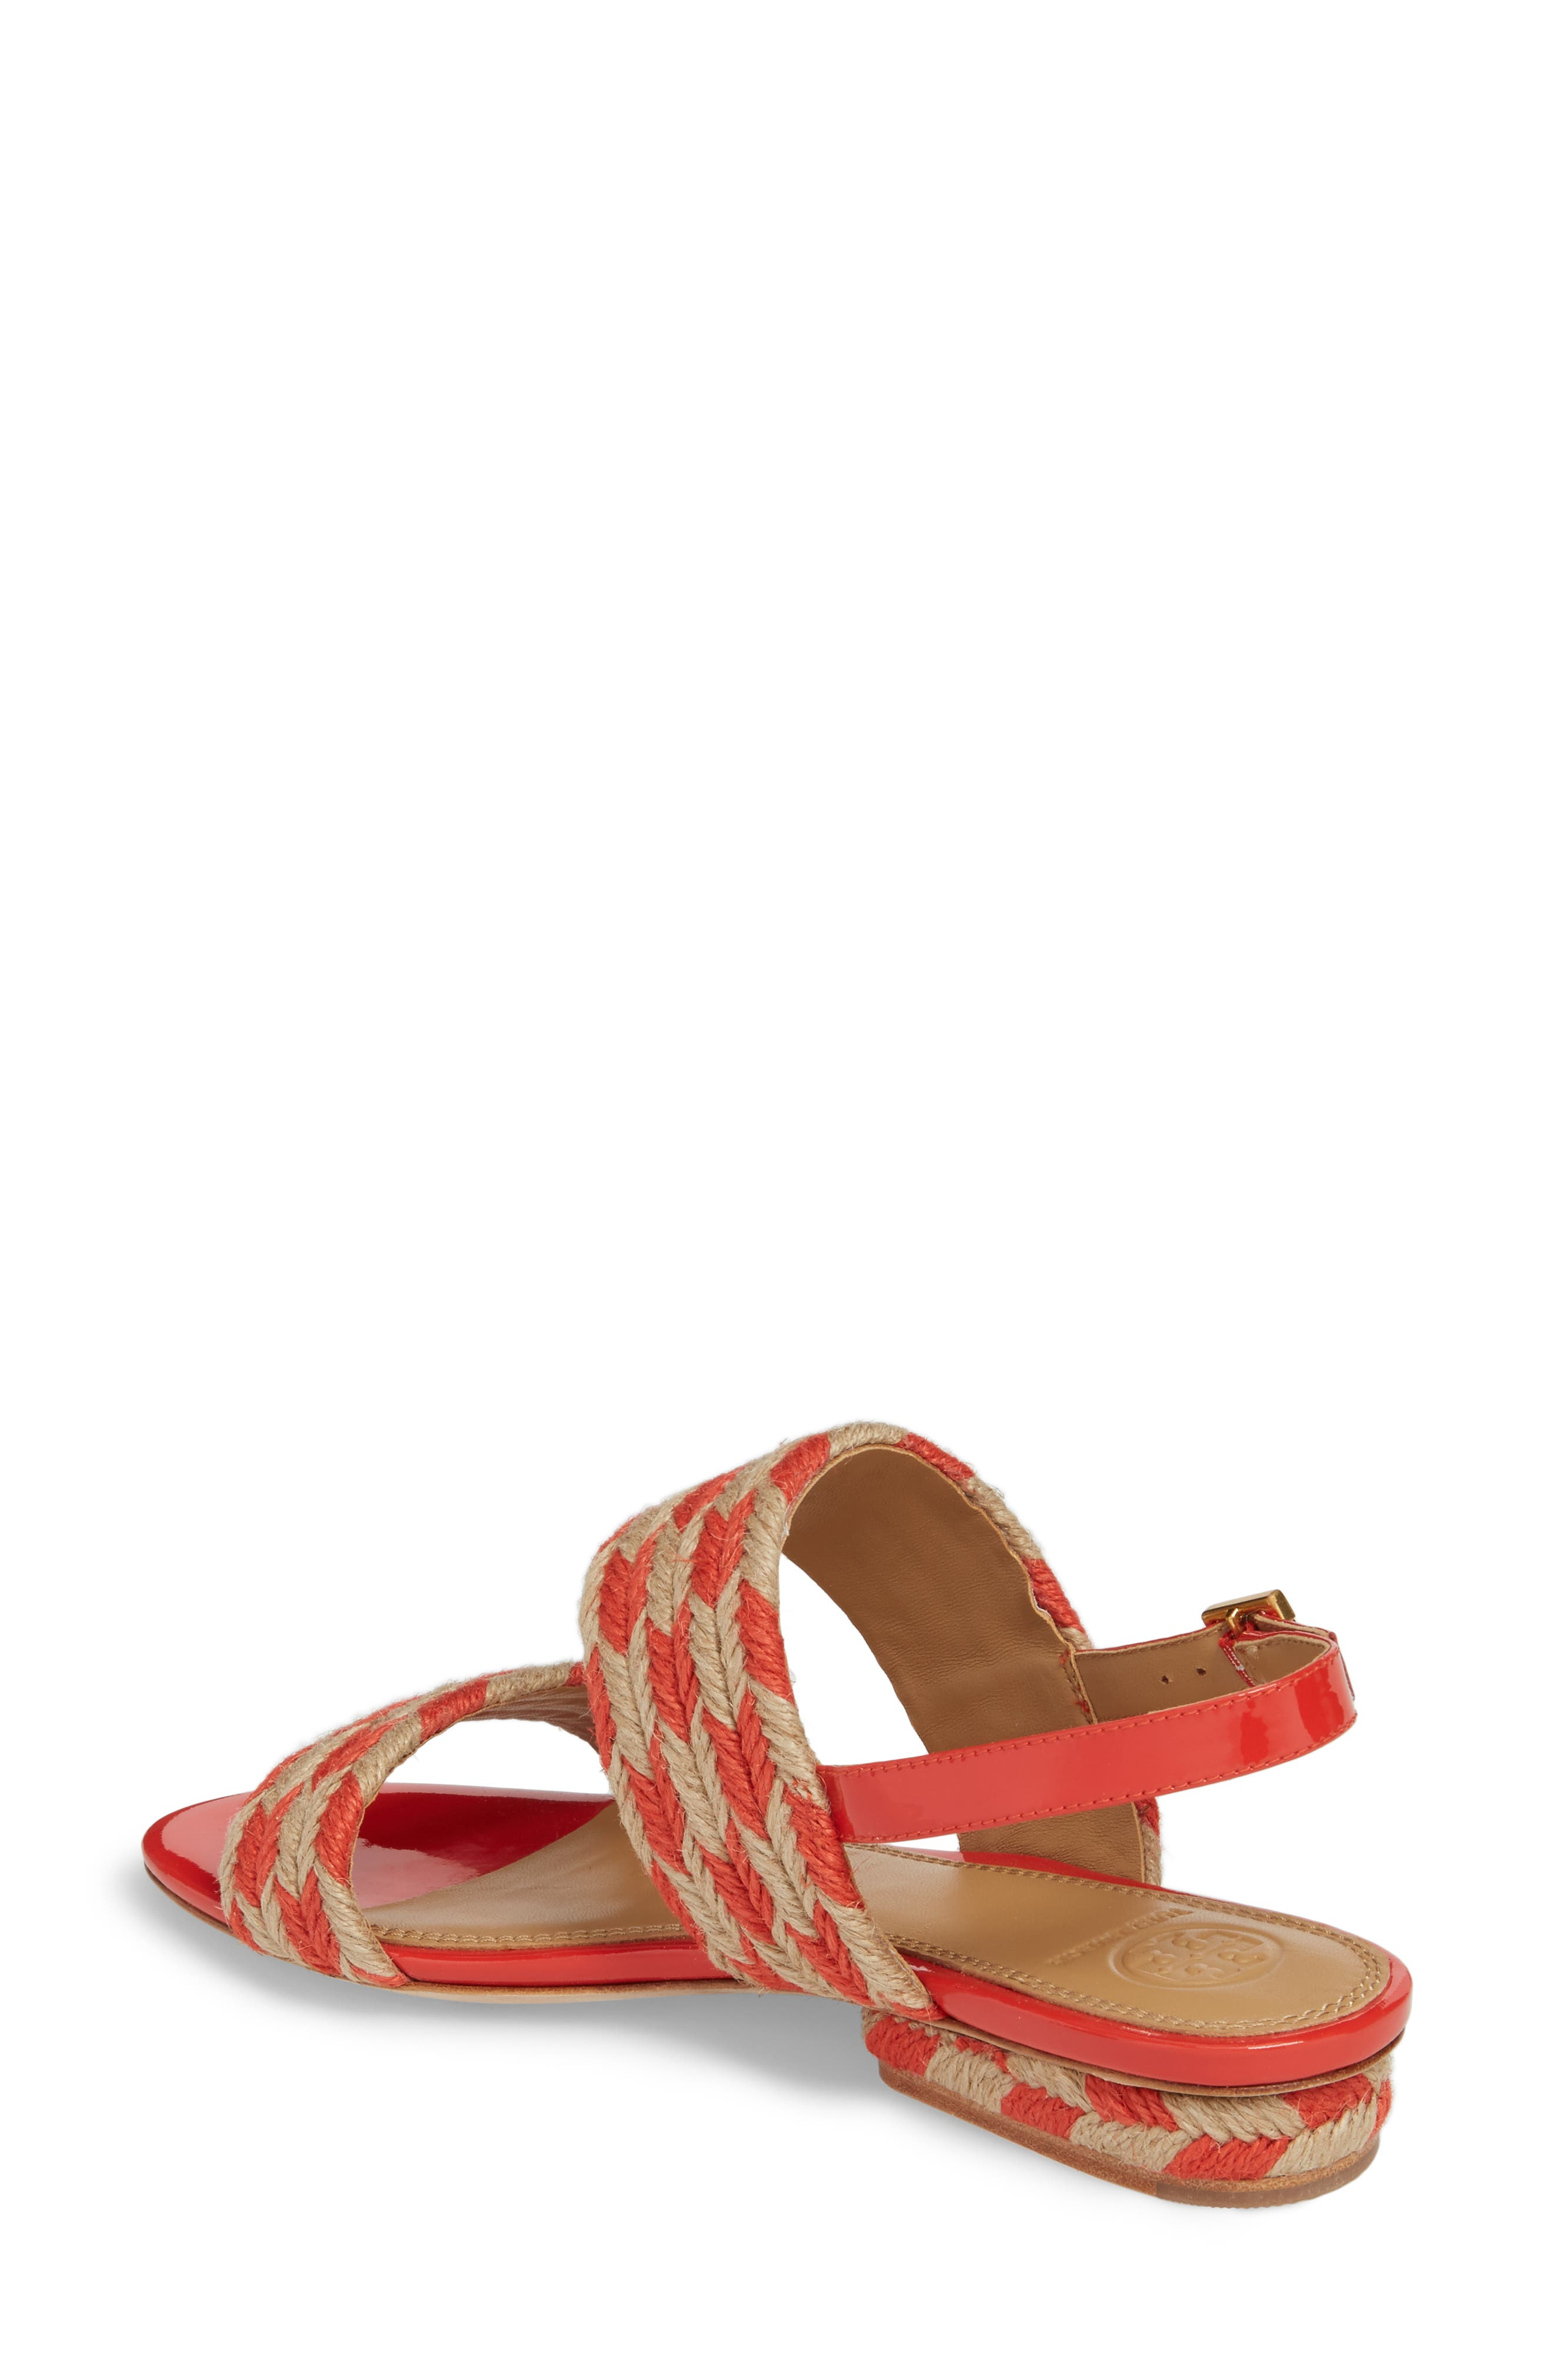 Lola Slingback Sandal,                             Alternate thumbnail 2, color,                             Poppy Orange/ Perfect Ivory